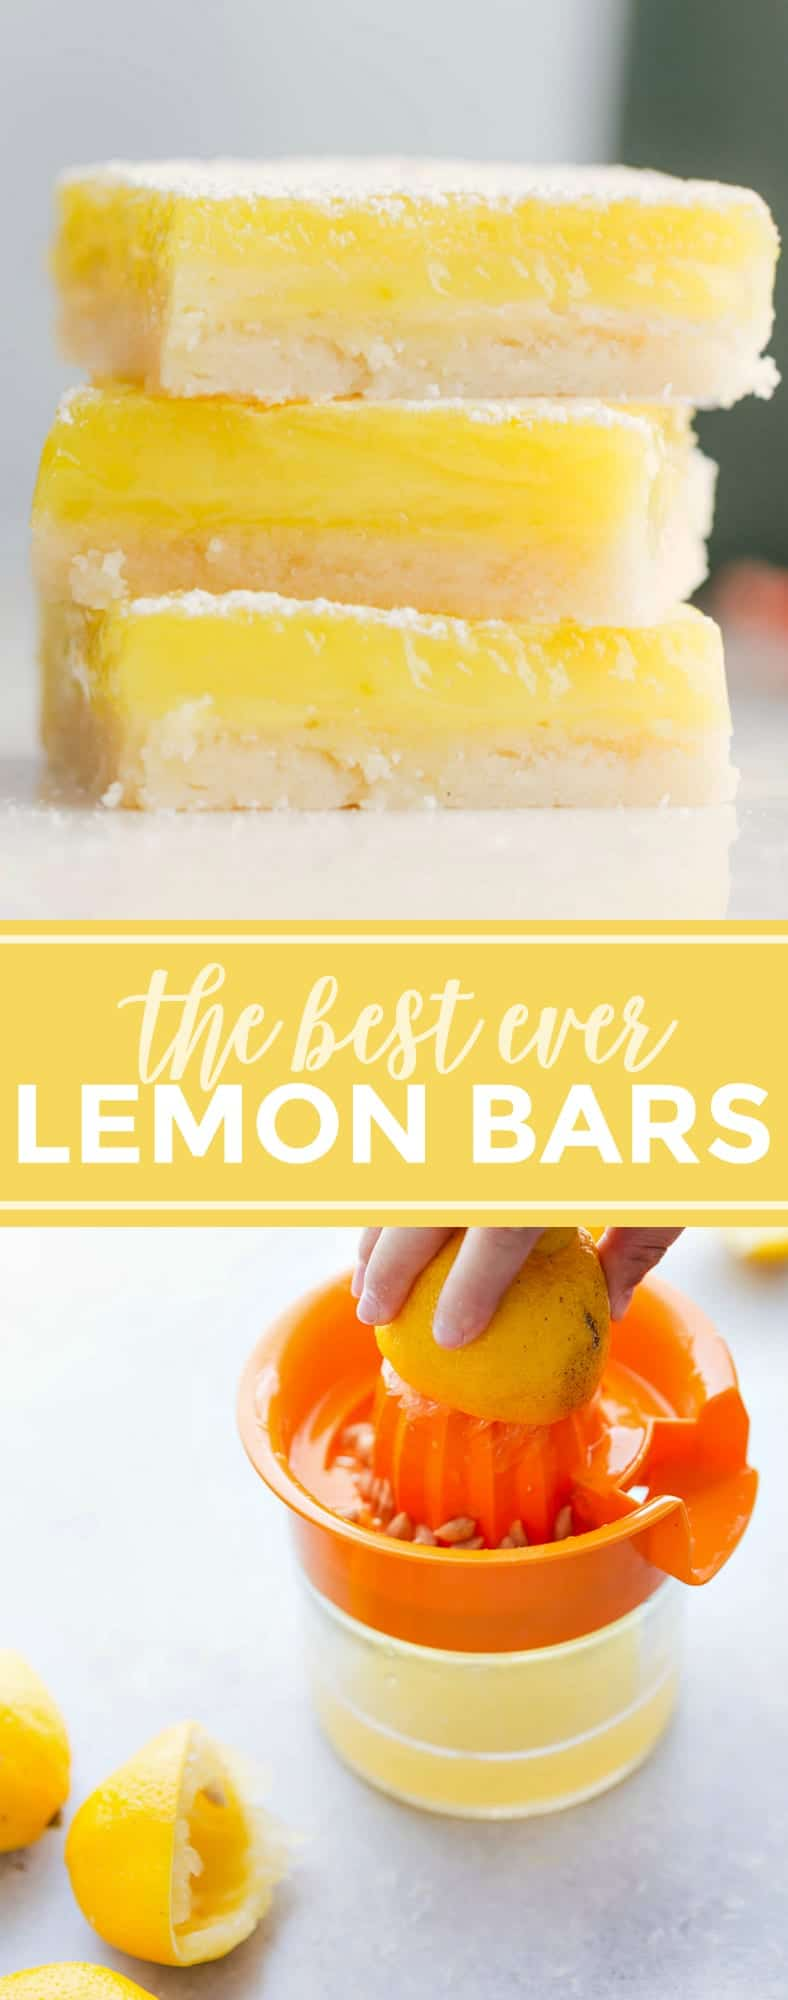 The ultimate BEST EVER Lemon Bars! These bars have tons of tangy lemon flavor and a simple shortbread crust via chelseasmessyapron.com #lemon #bars #squares #dessert #easy #quick #kidfriendly #delicious